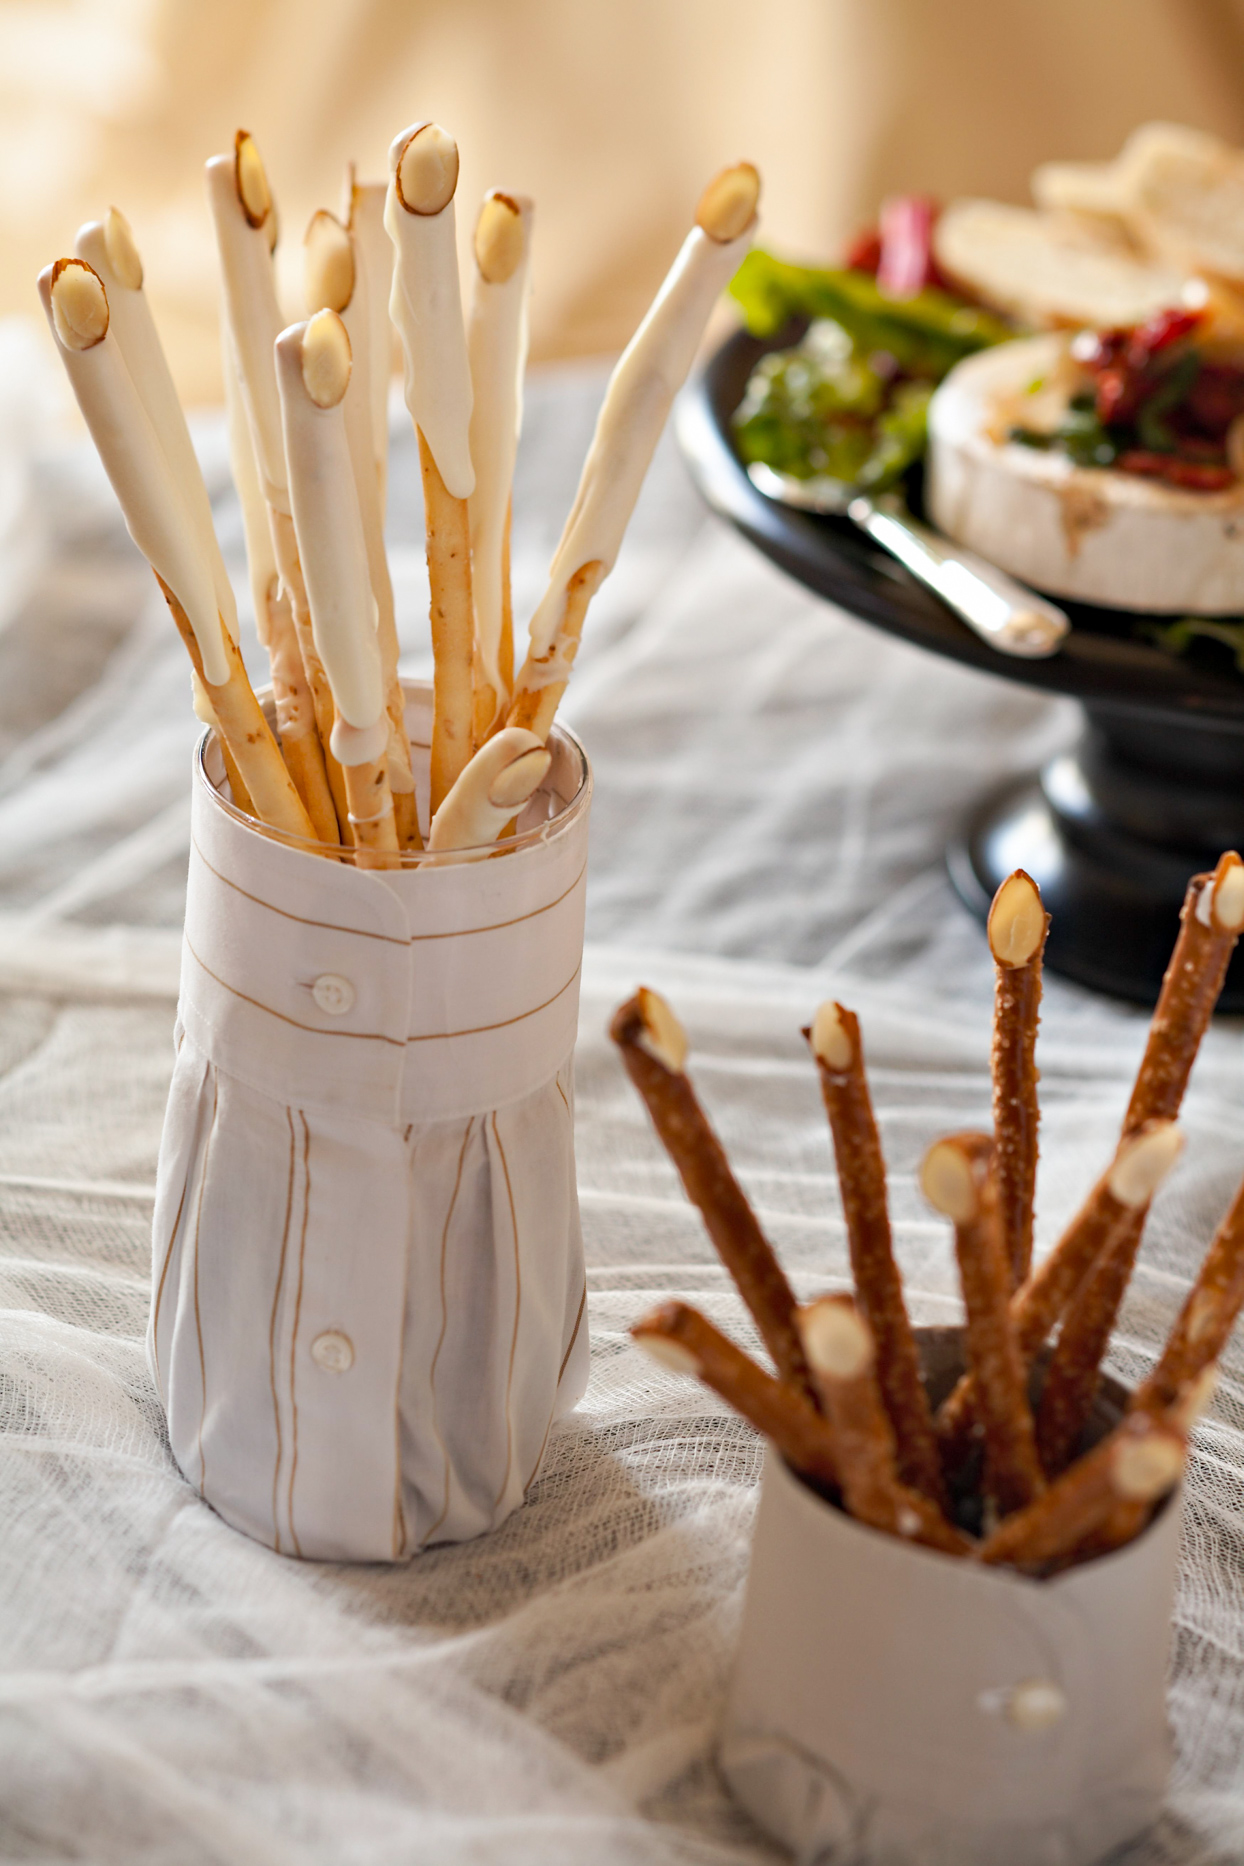 12. Crispy witch's fingers made from sweet straws